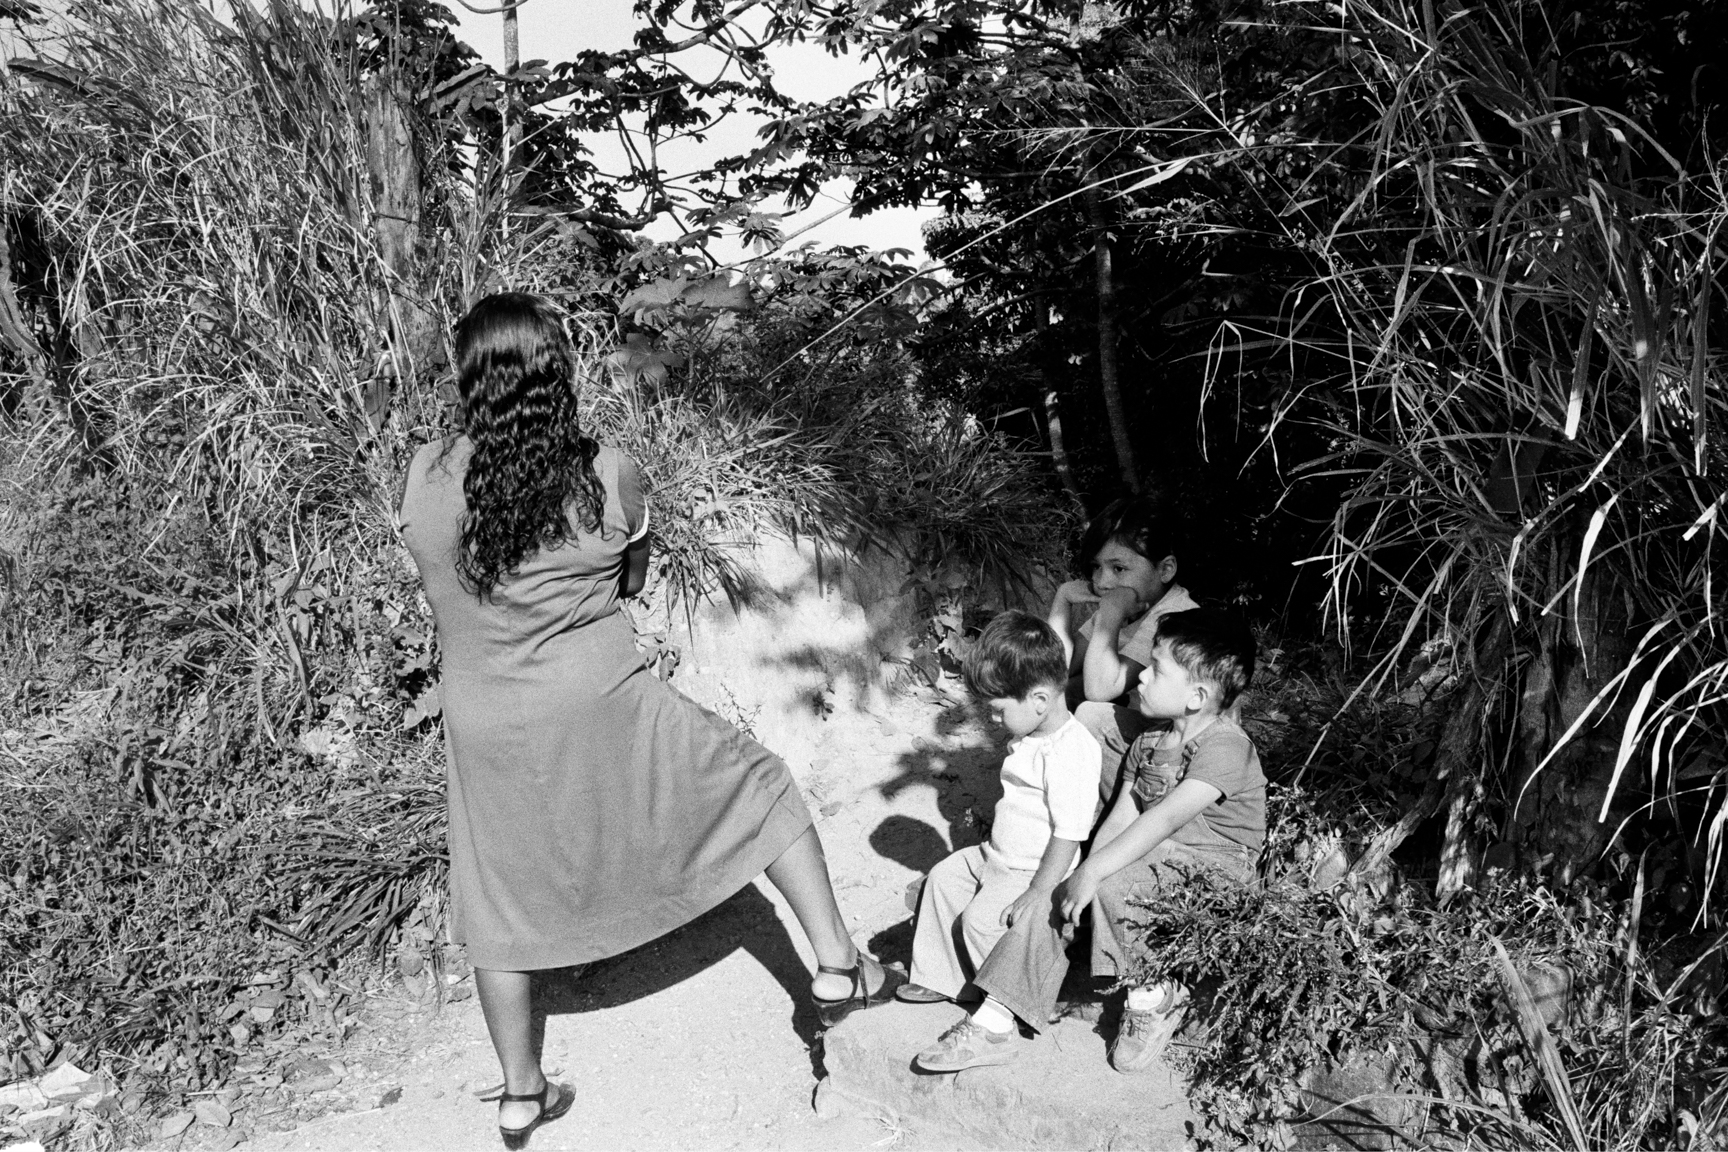 A woman and her children wait for bus transportation March 1983 in the Mejicanos neighborhood of San Salvador, El Salvador.